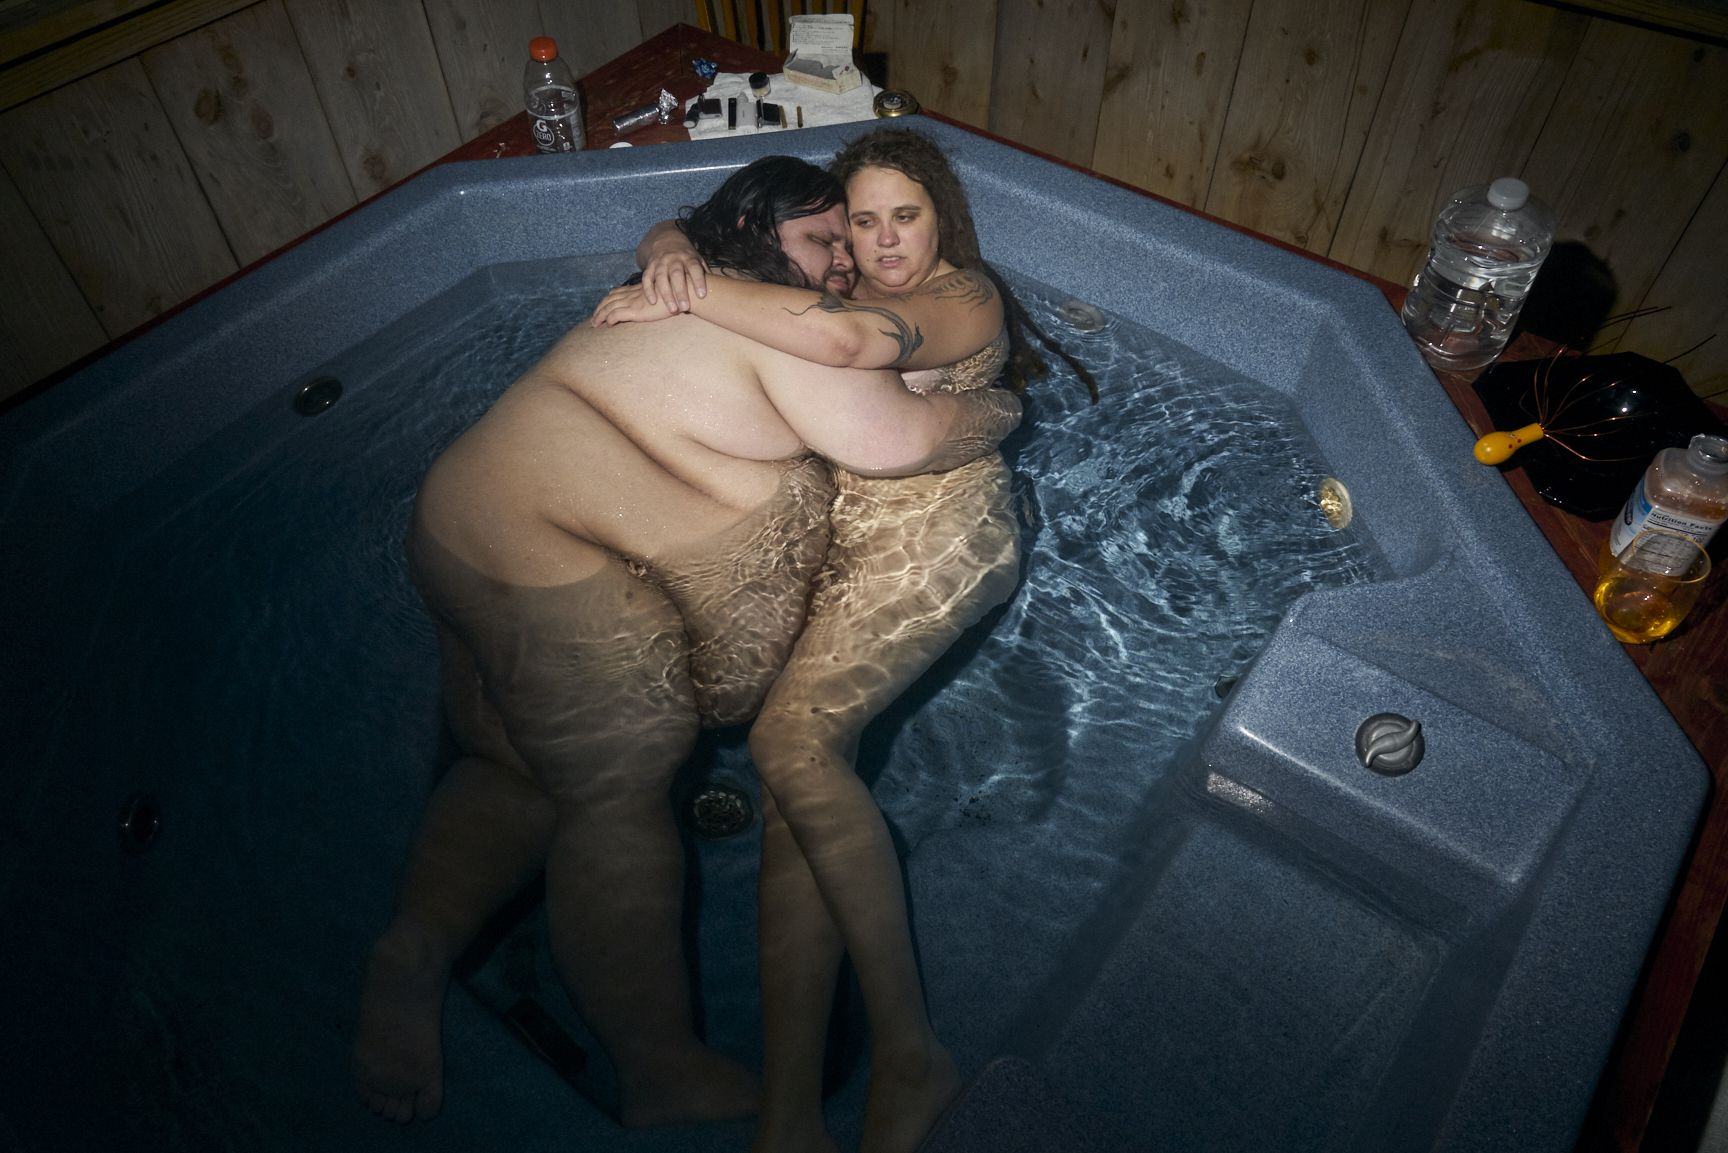 Stacy Kranitz  Hot Spring, North Carolina, 2019  Archival Pigment Print  Archival Pigment Print  16 x 24 inches, Edition of 7  27 x 40 inches, Edition of 3, nude couple embracing in a hot tub, North Carolina